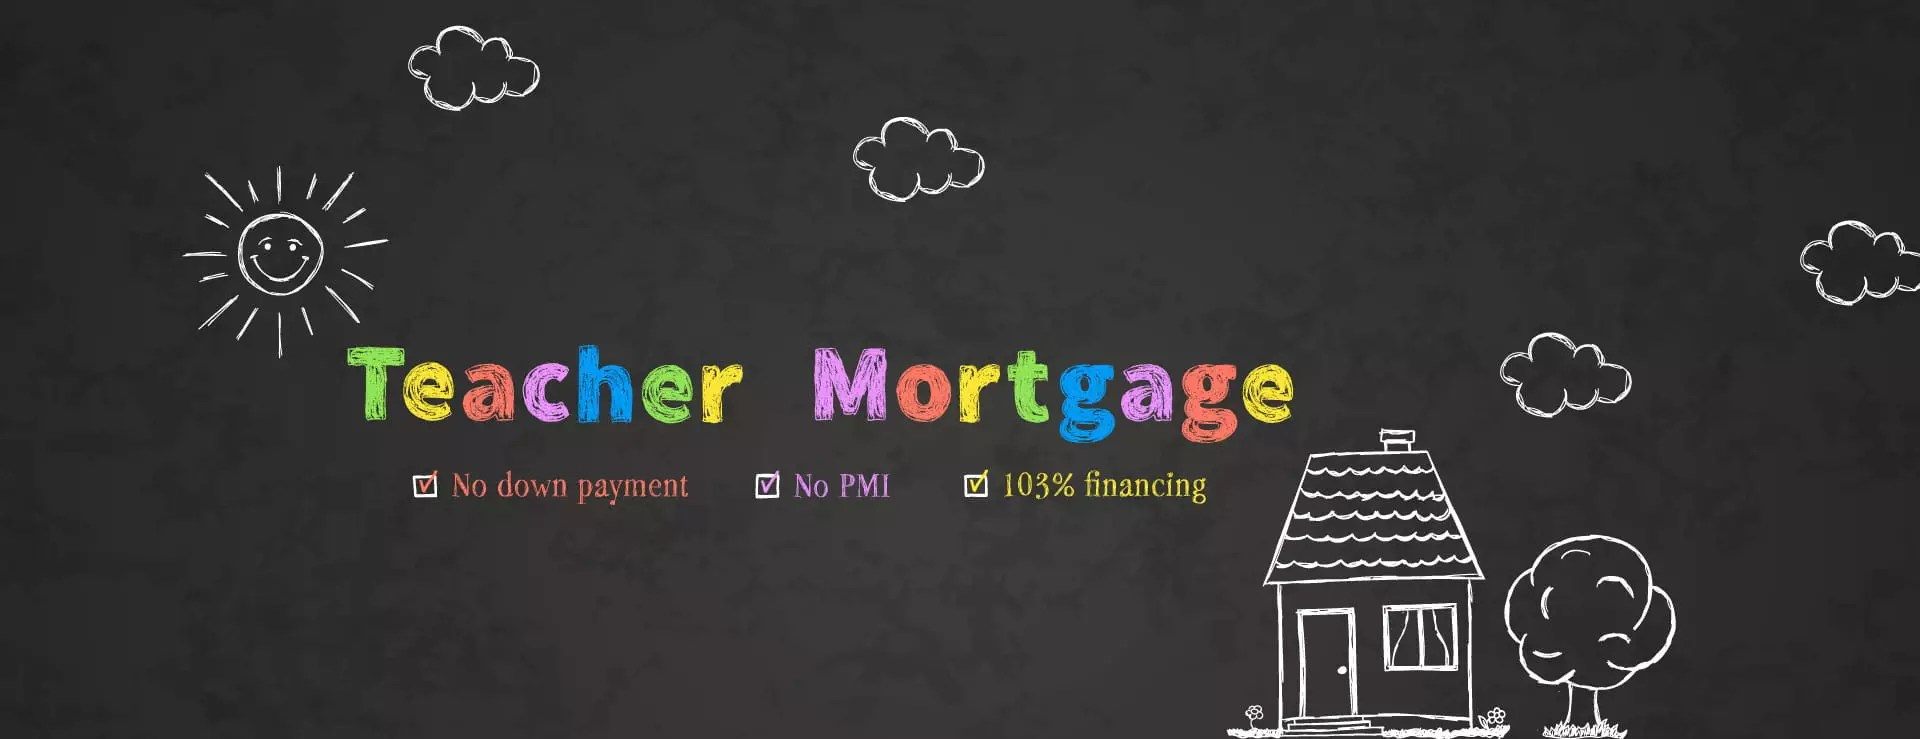 teacher-mortgage-web-3-min